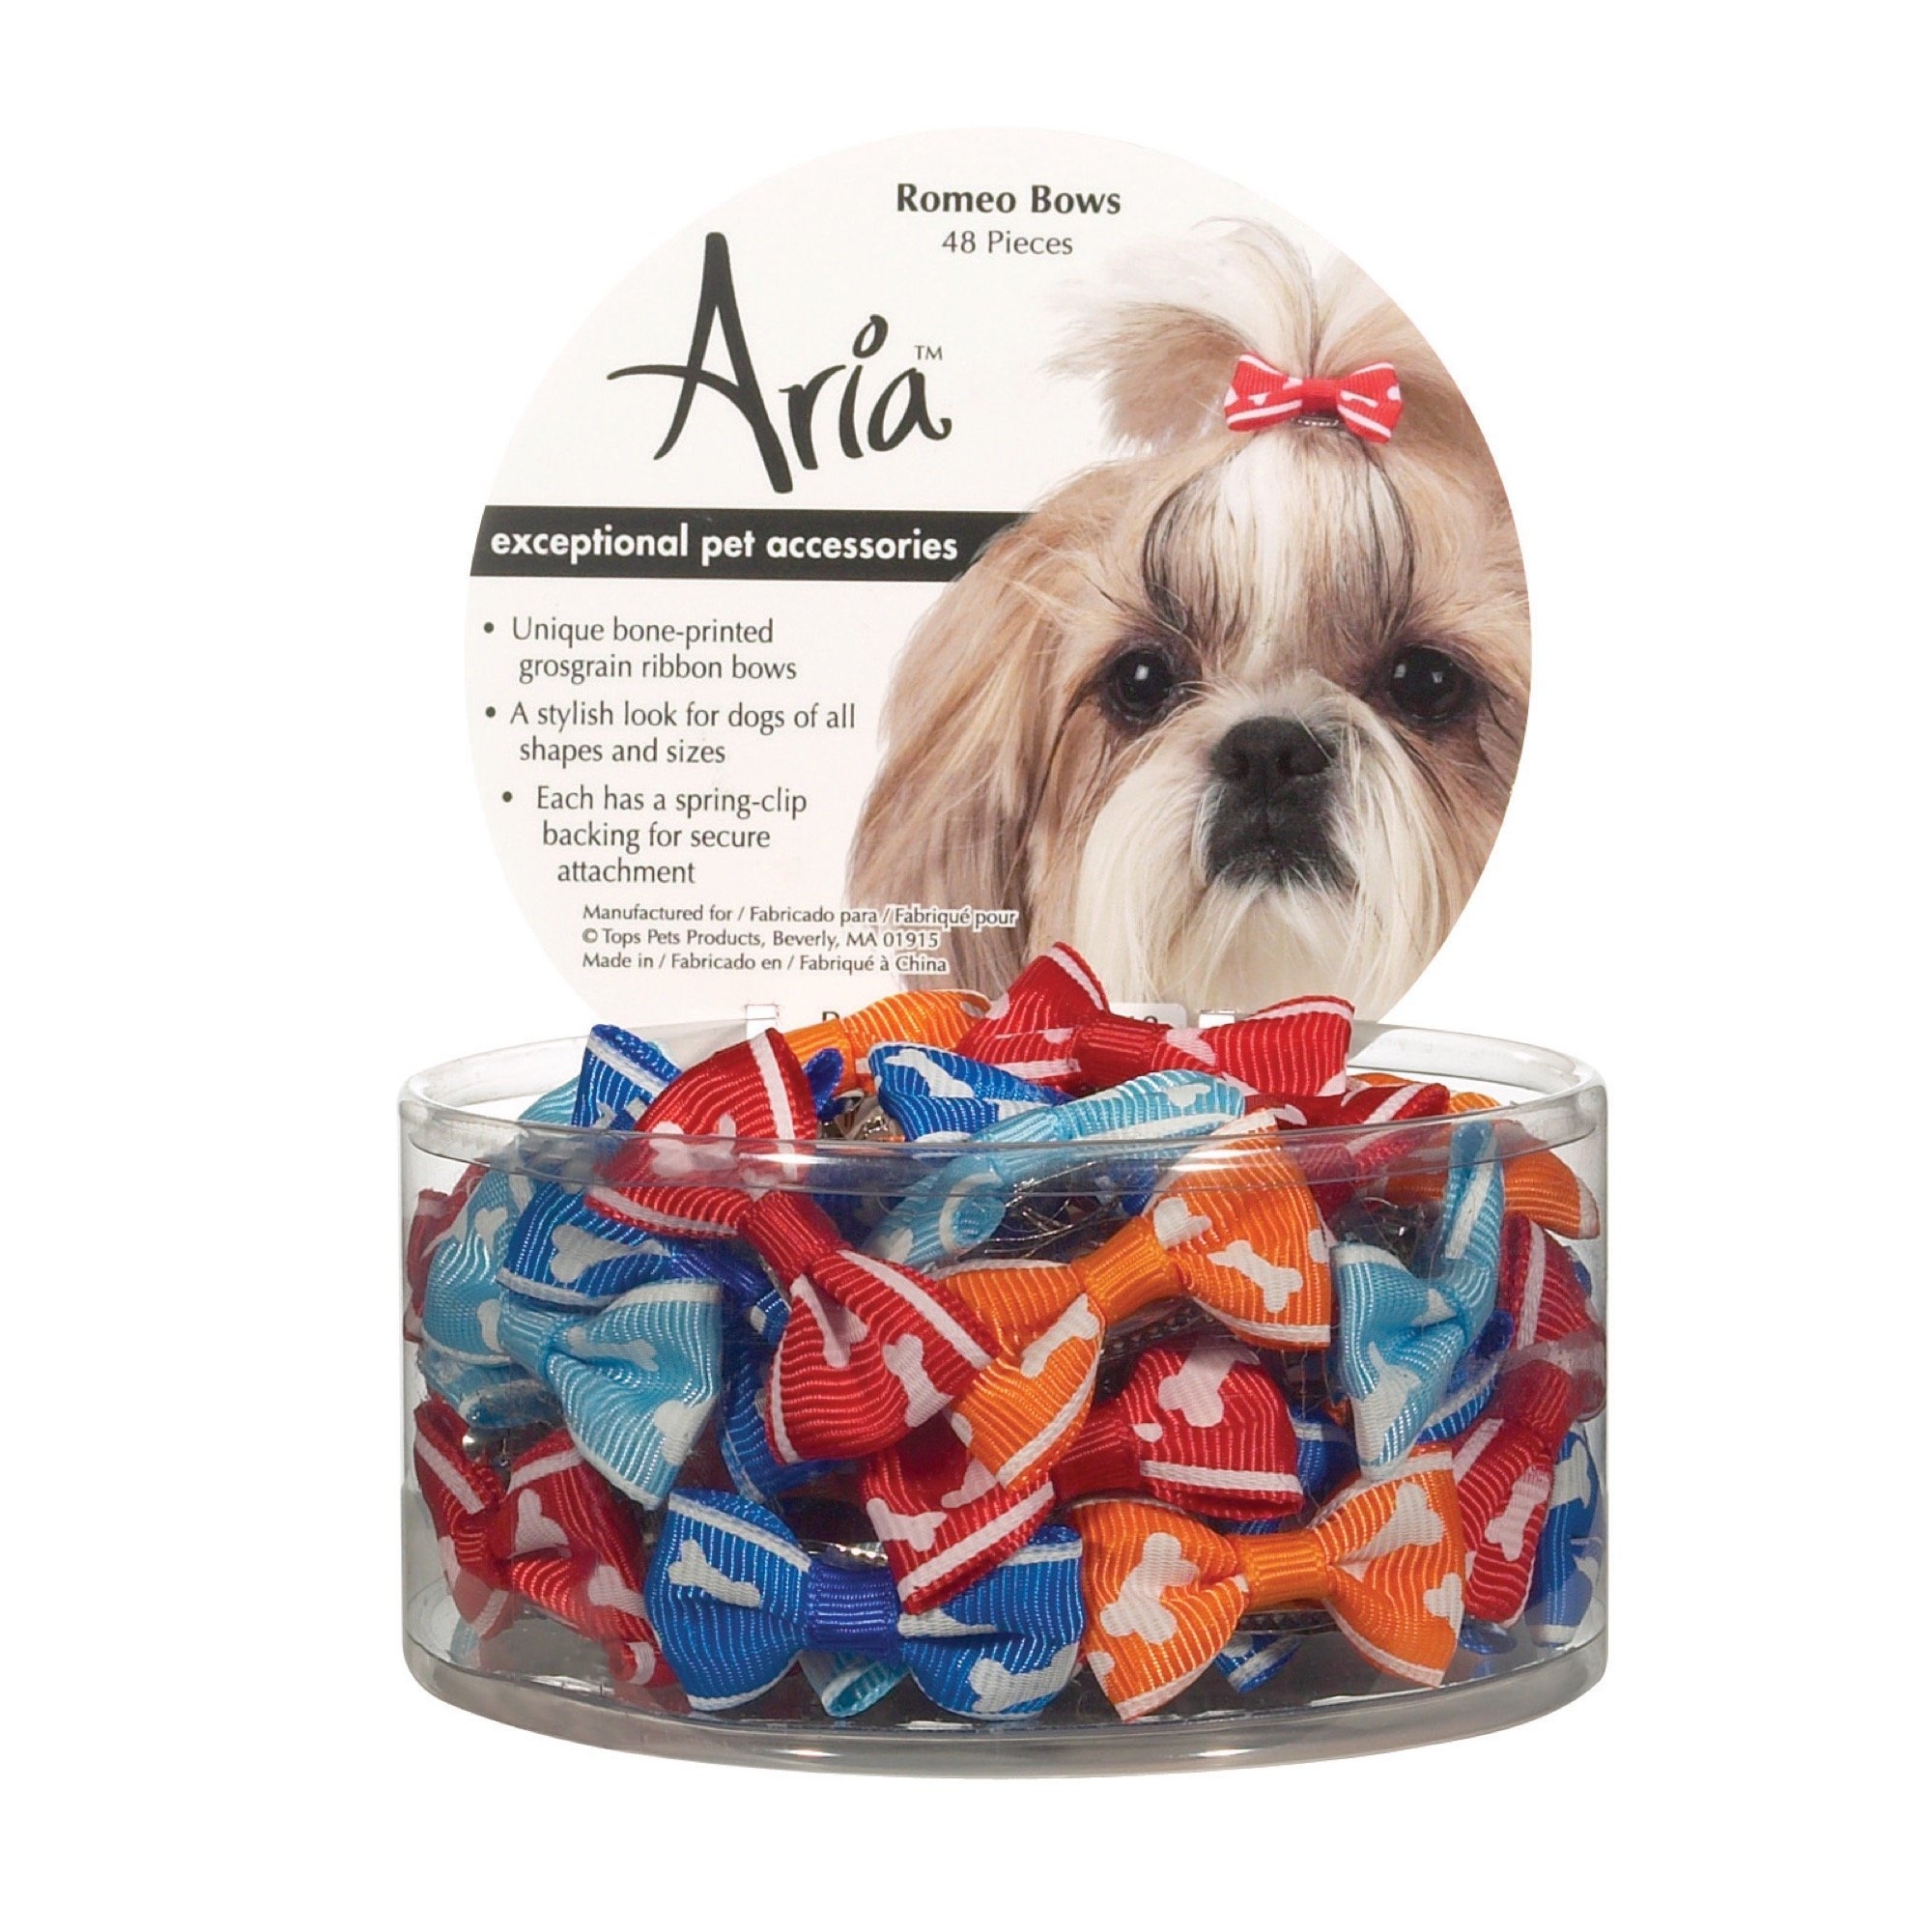 Aria Romeo Bows for Dogs, 48-Piece Canisters by Aria